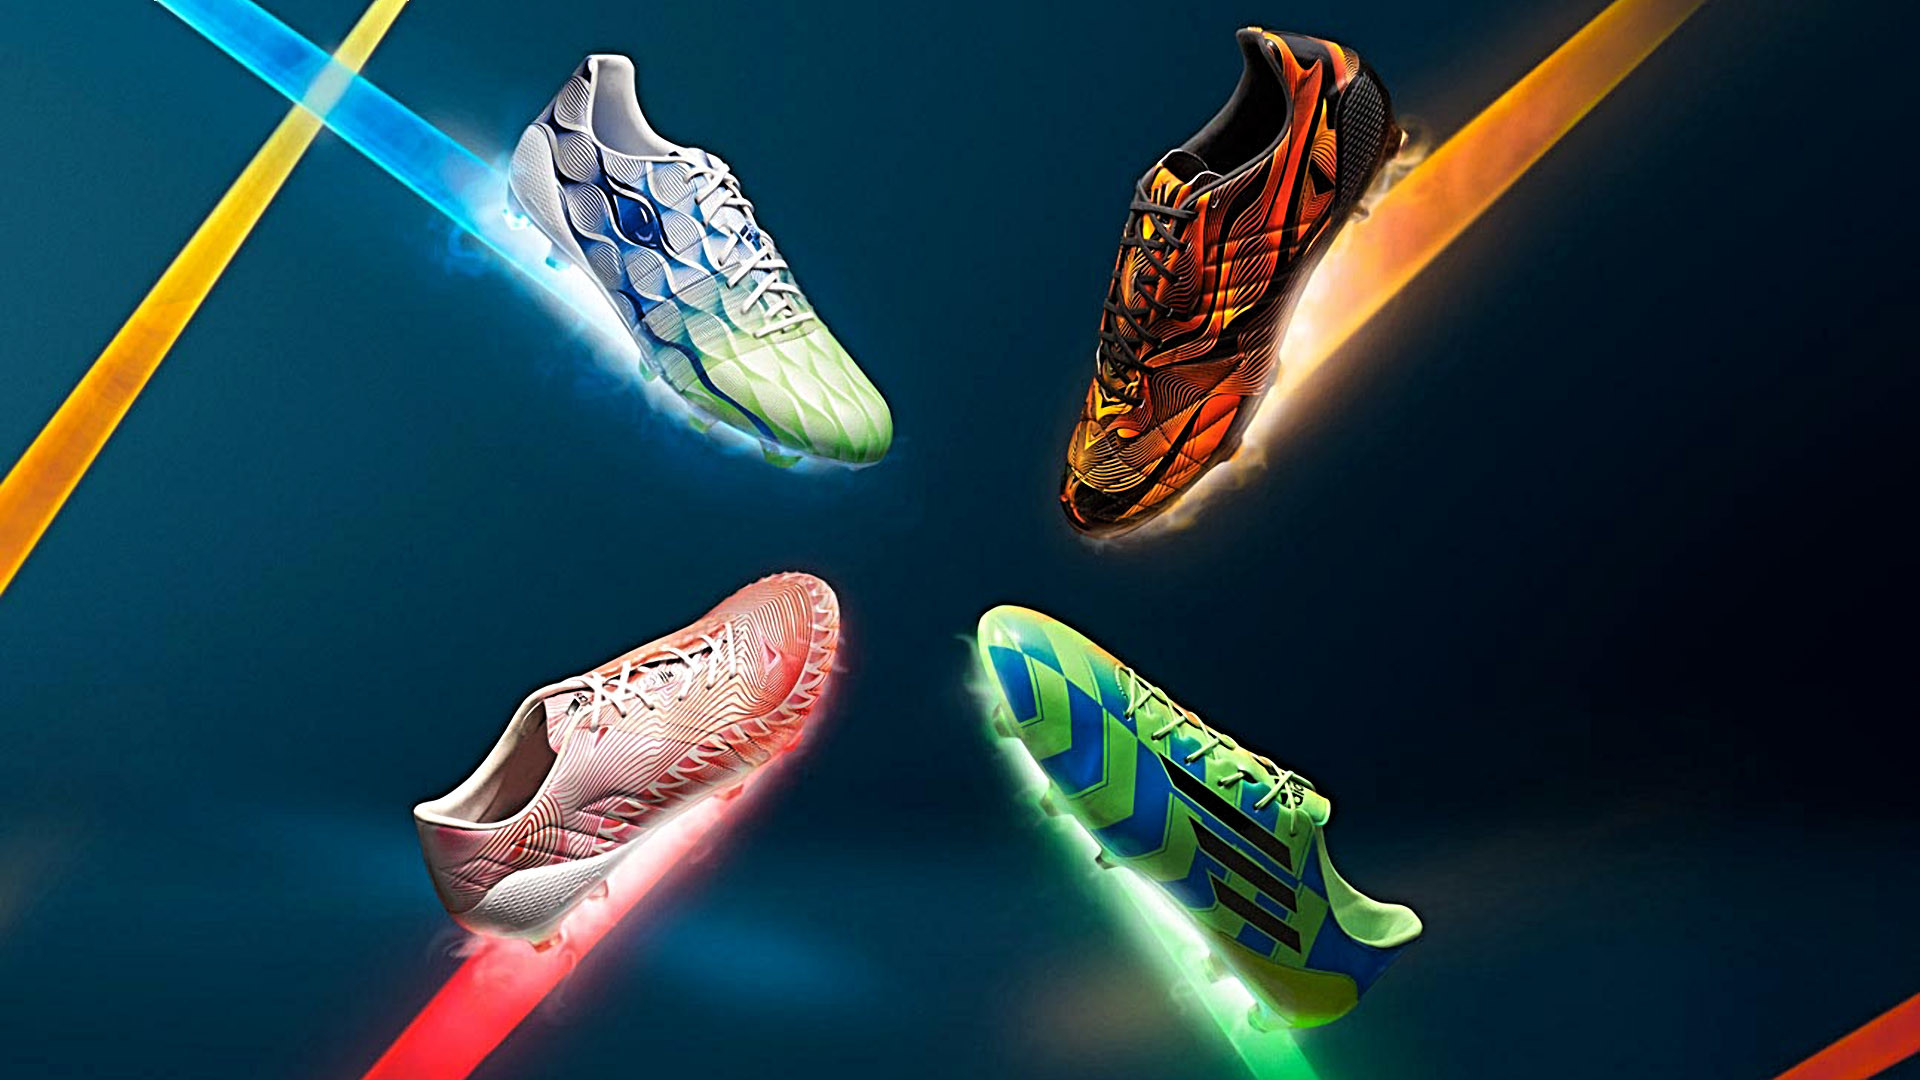 ff0fe48ad3d2 1920x1080 Adidas Boots HD Wallpapers 6 · Download · Running ...